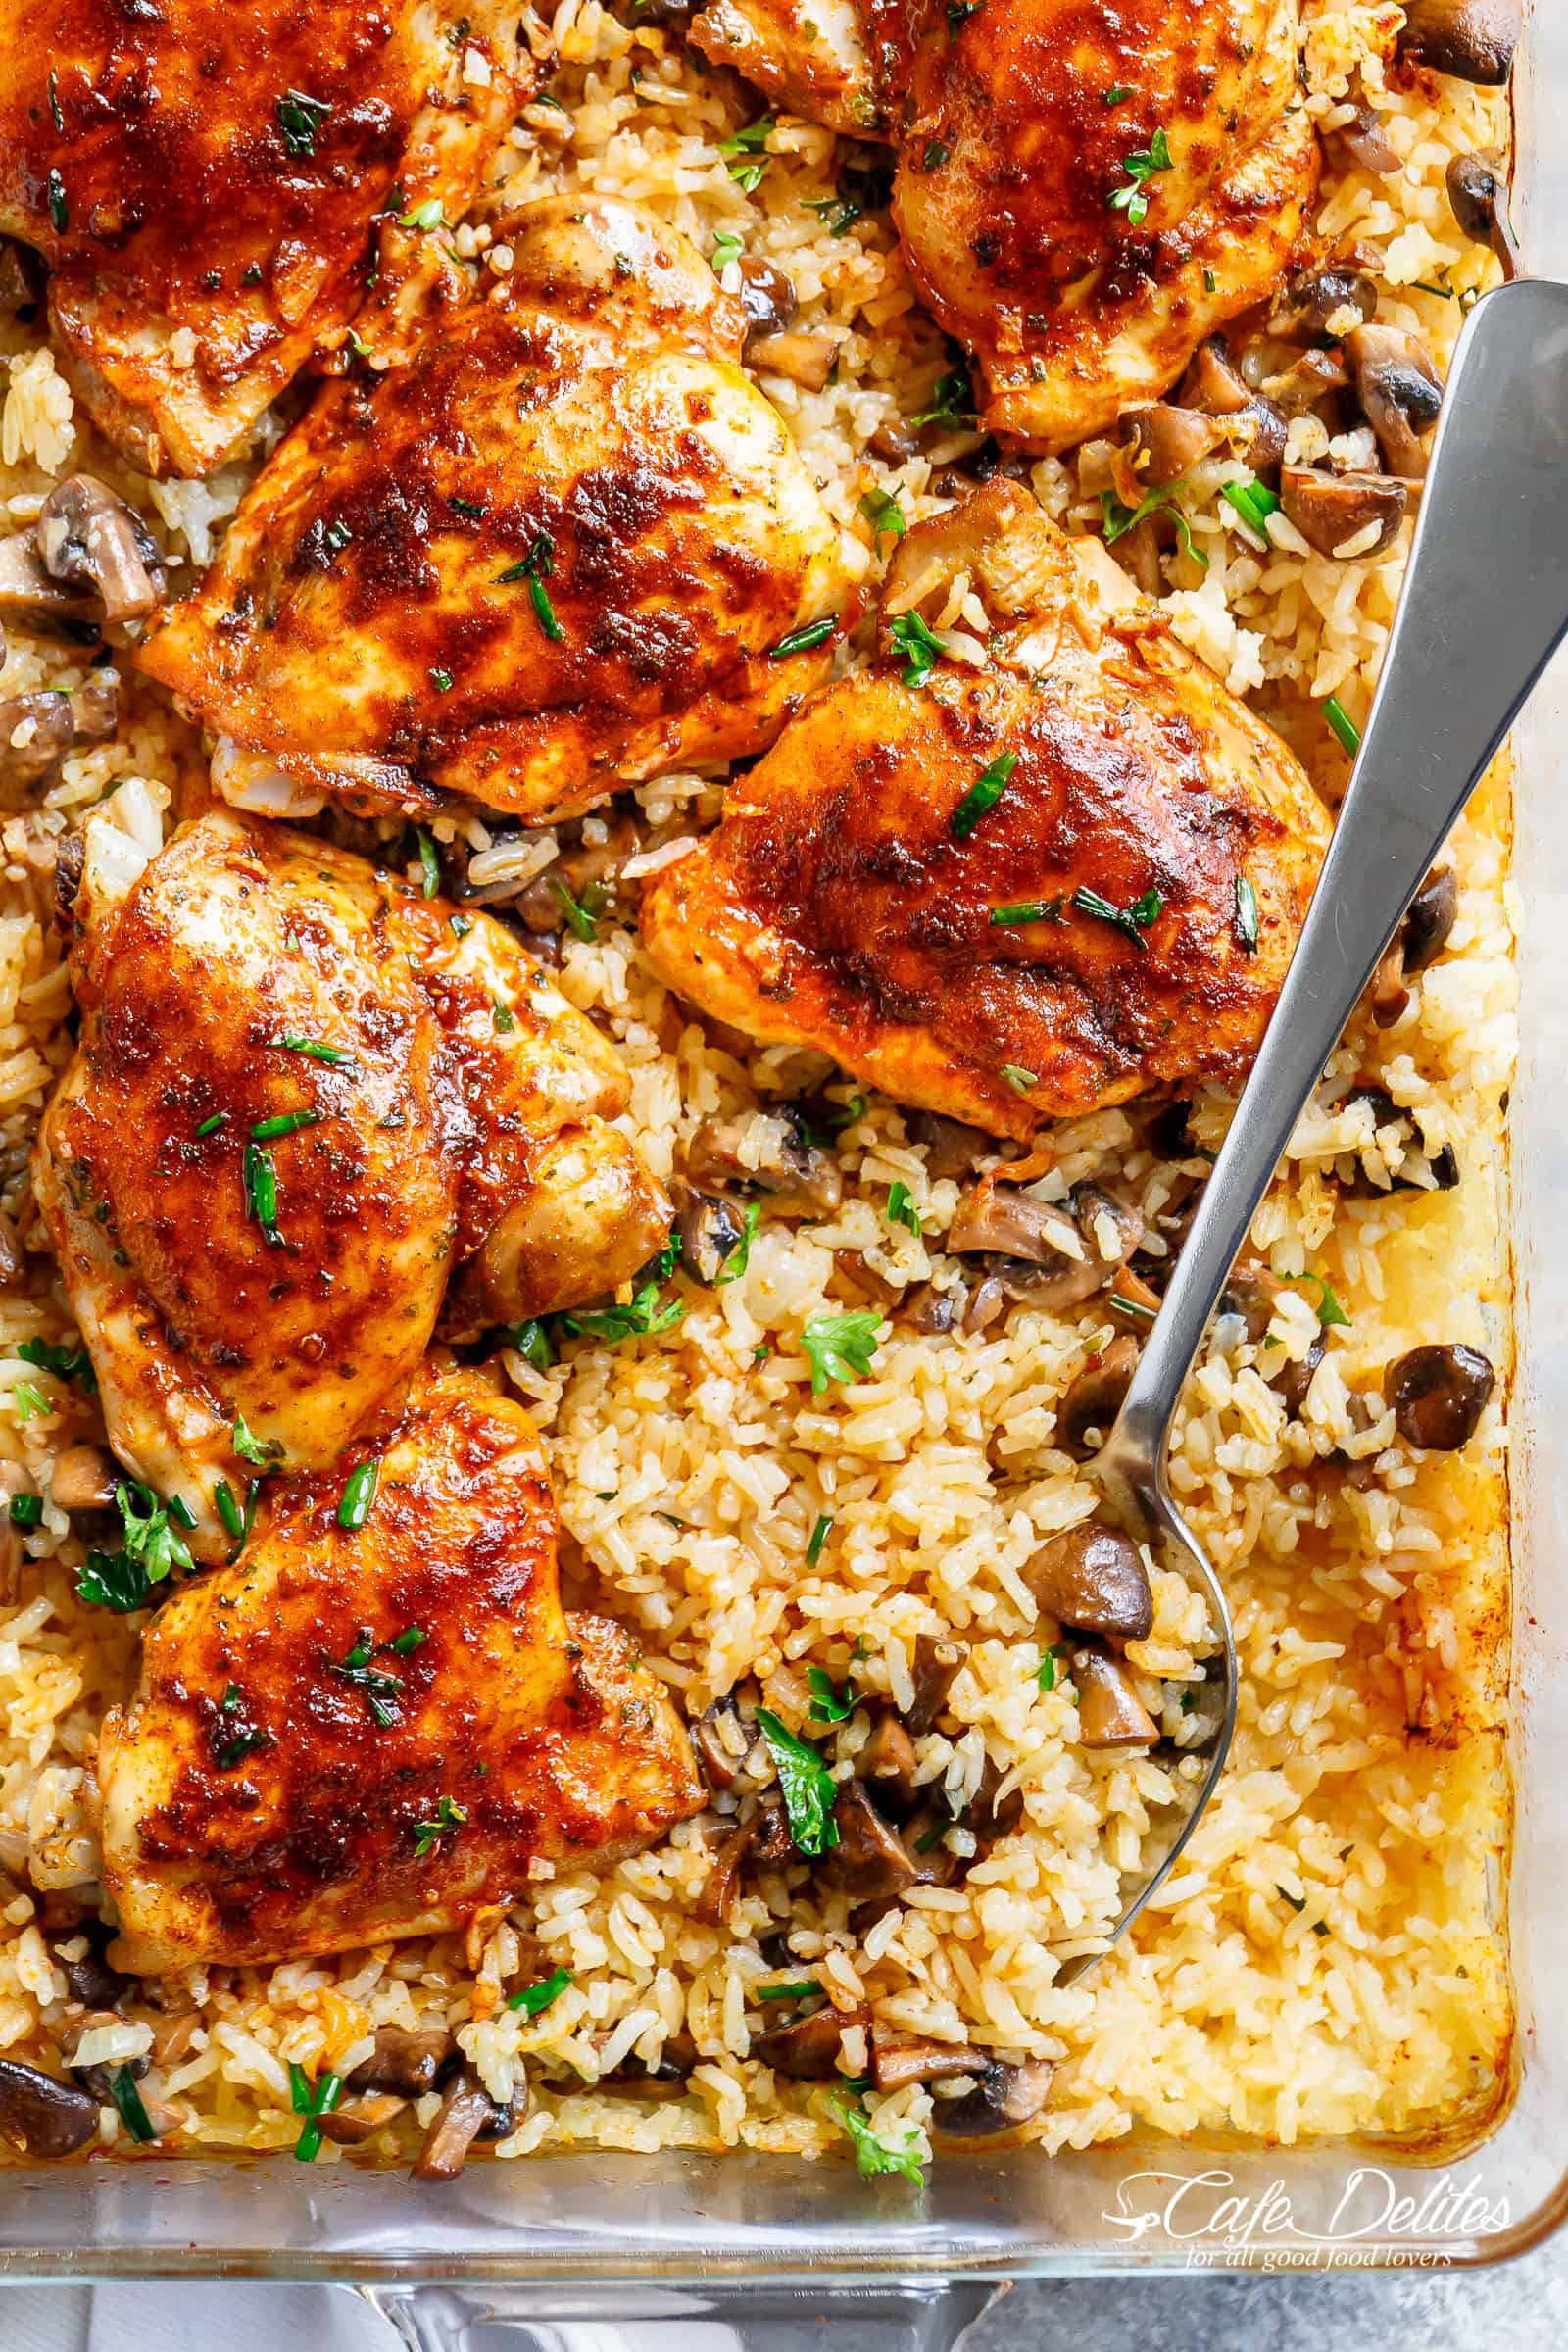 Baked Chicken And Rice Recipe  Oven Baked Chicken And Rice Cafe Delites